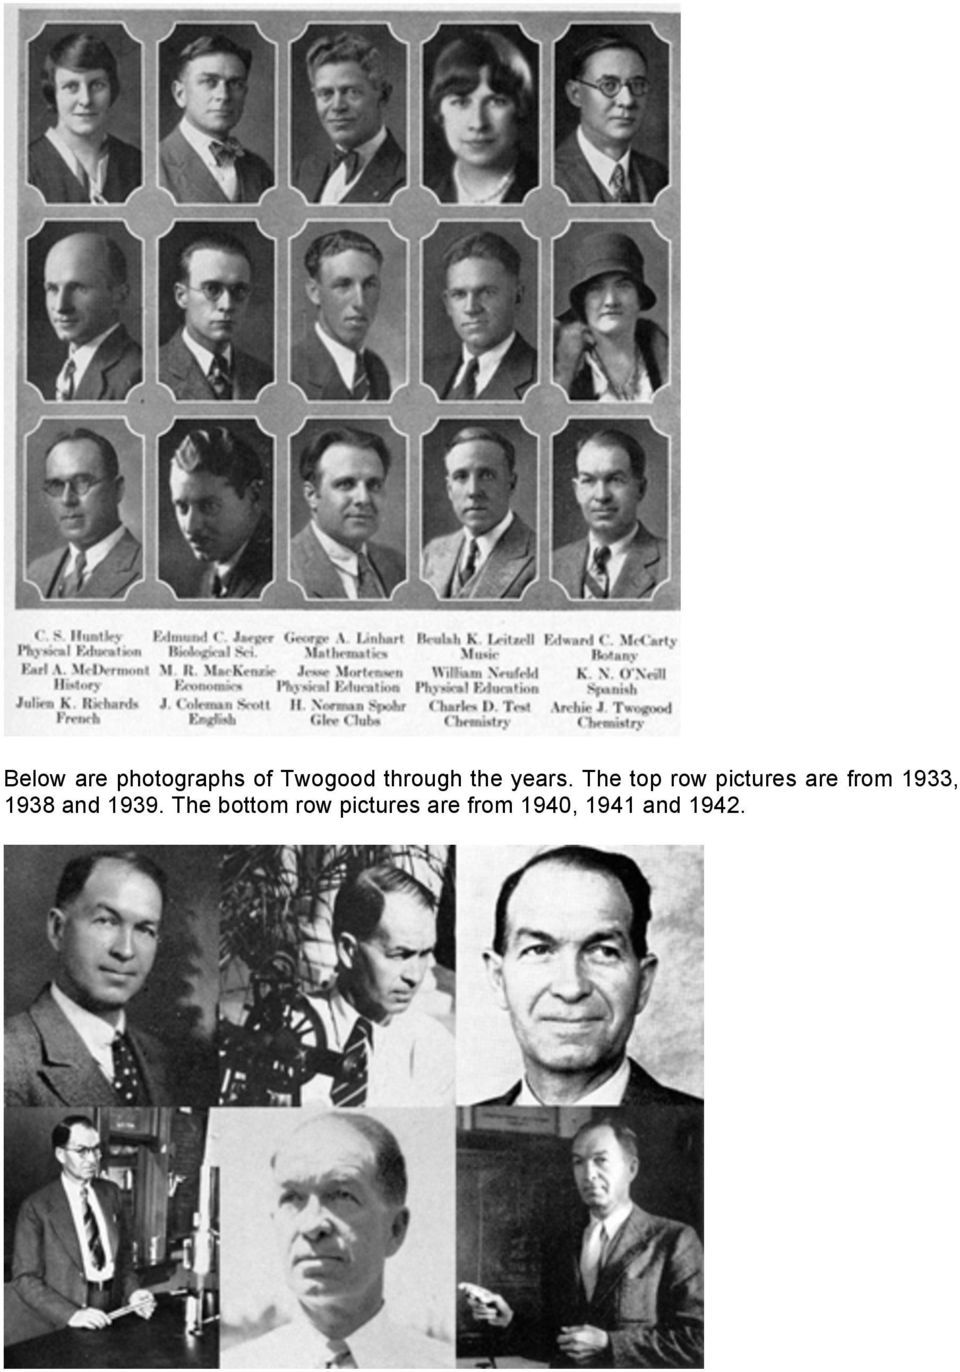 The top row pictures are from 1933,